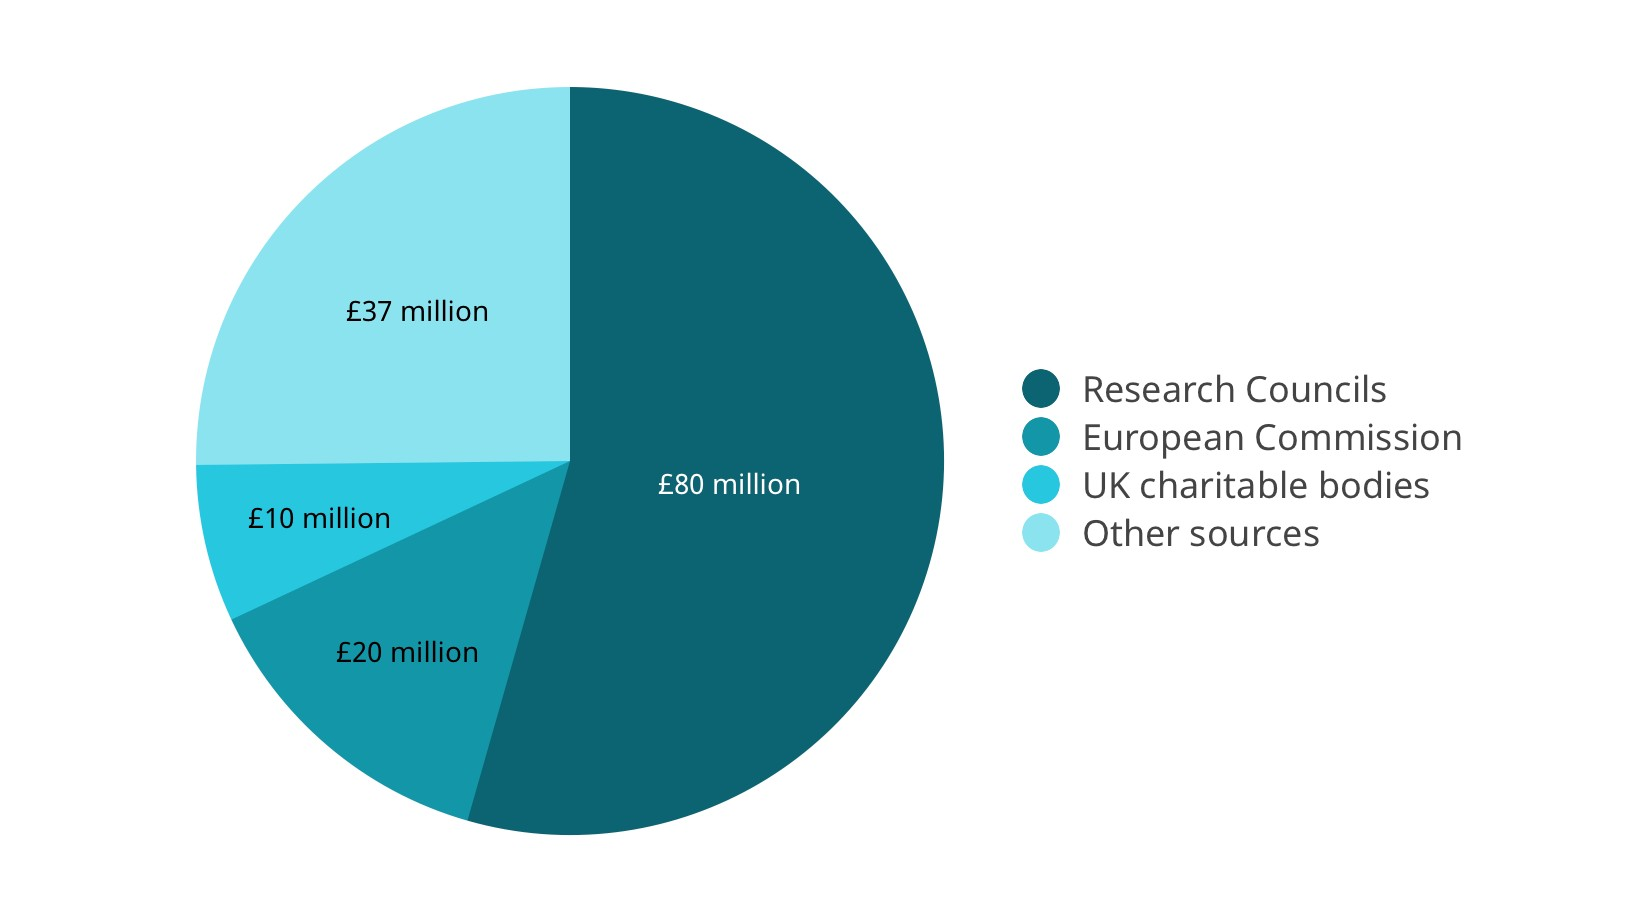 A pie chart showing the University's portfolio of research funding